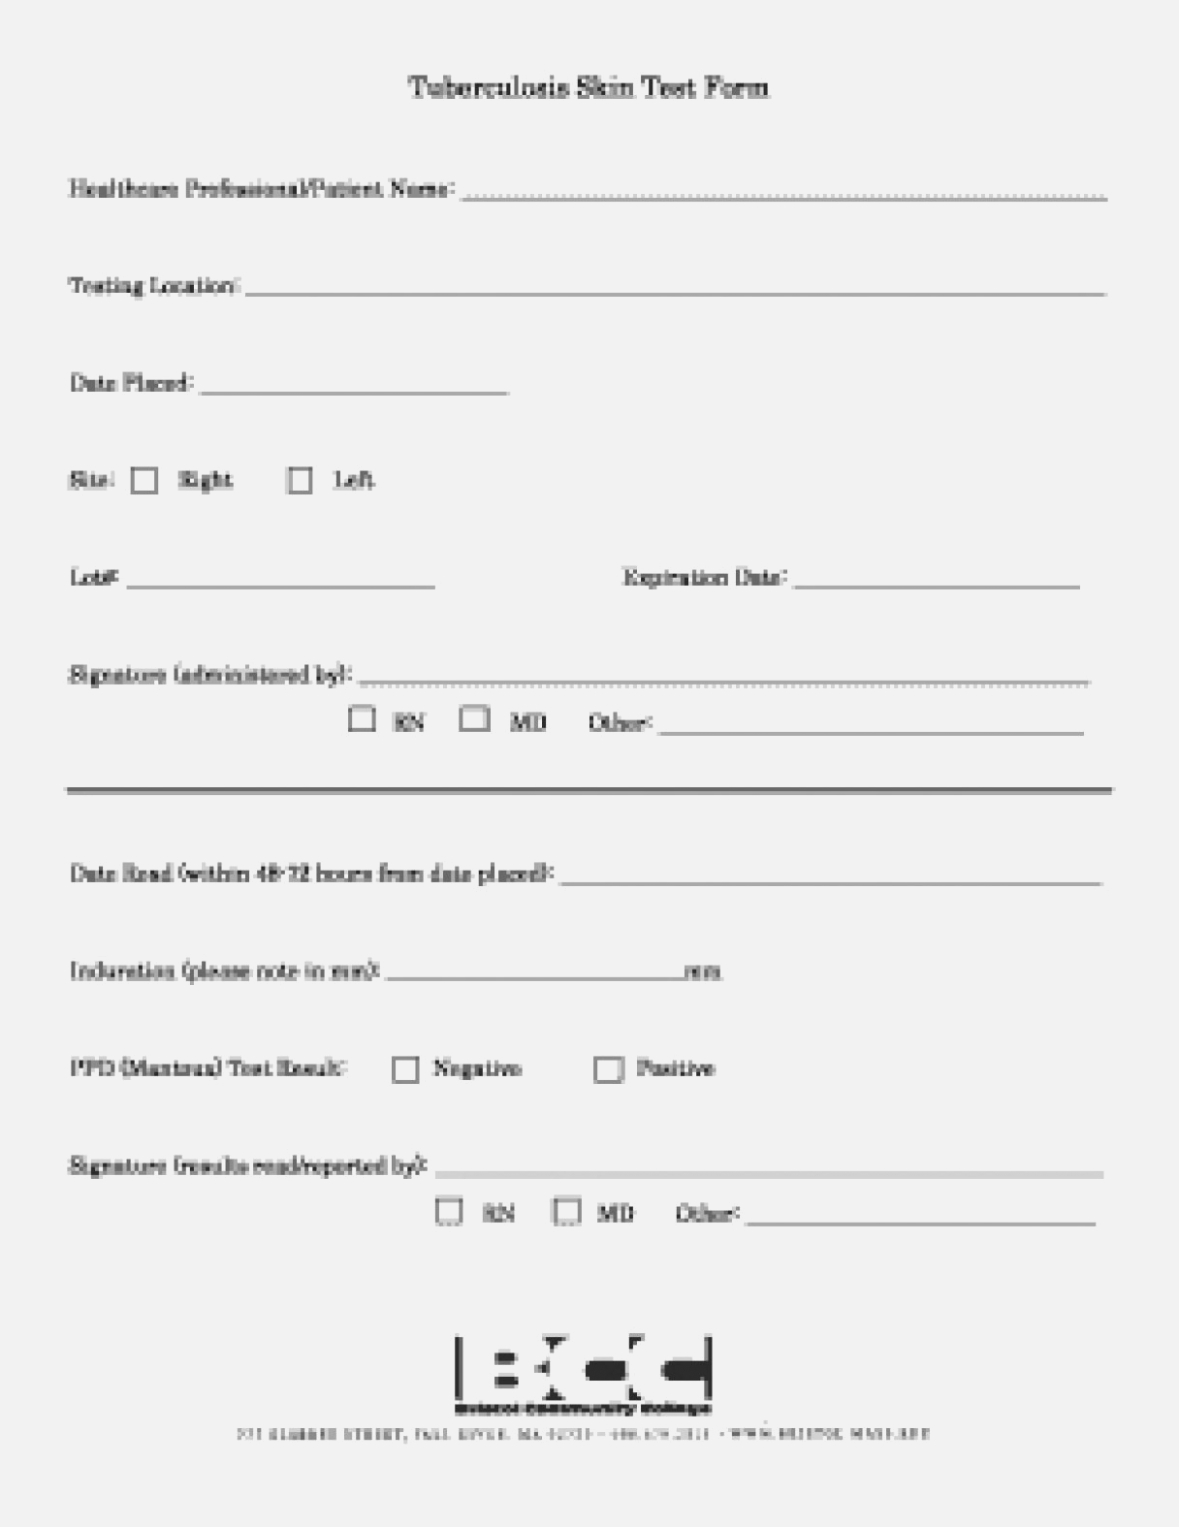 Tb Test Result Form Primary Addition Printable 14 Step Forms - Free Printable Tb Test Form